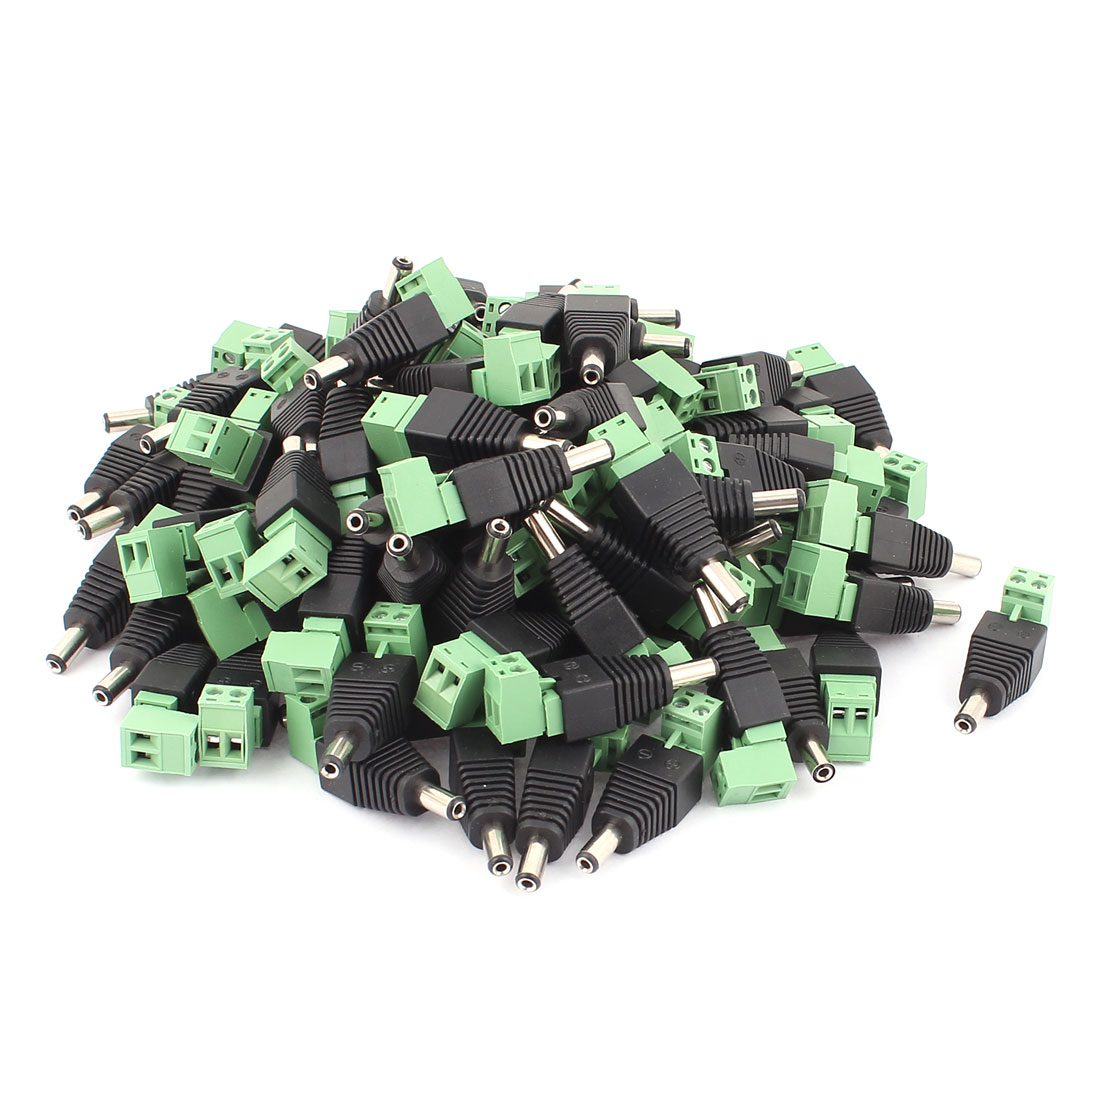 100Pcs CCTV Camera Terminal Block 2.1x5.5mm DC Power Male Jack Socket Connector